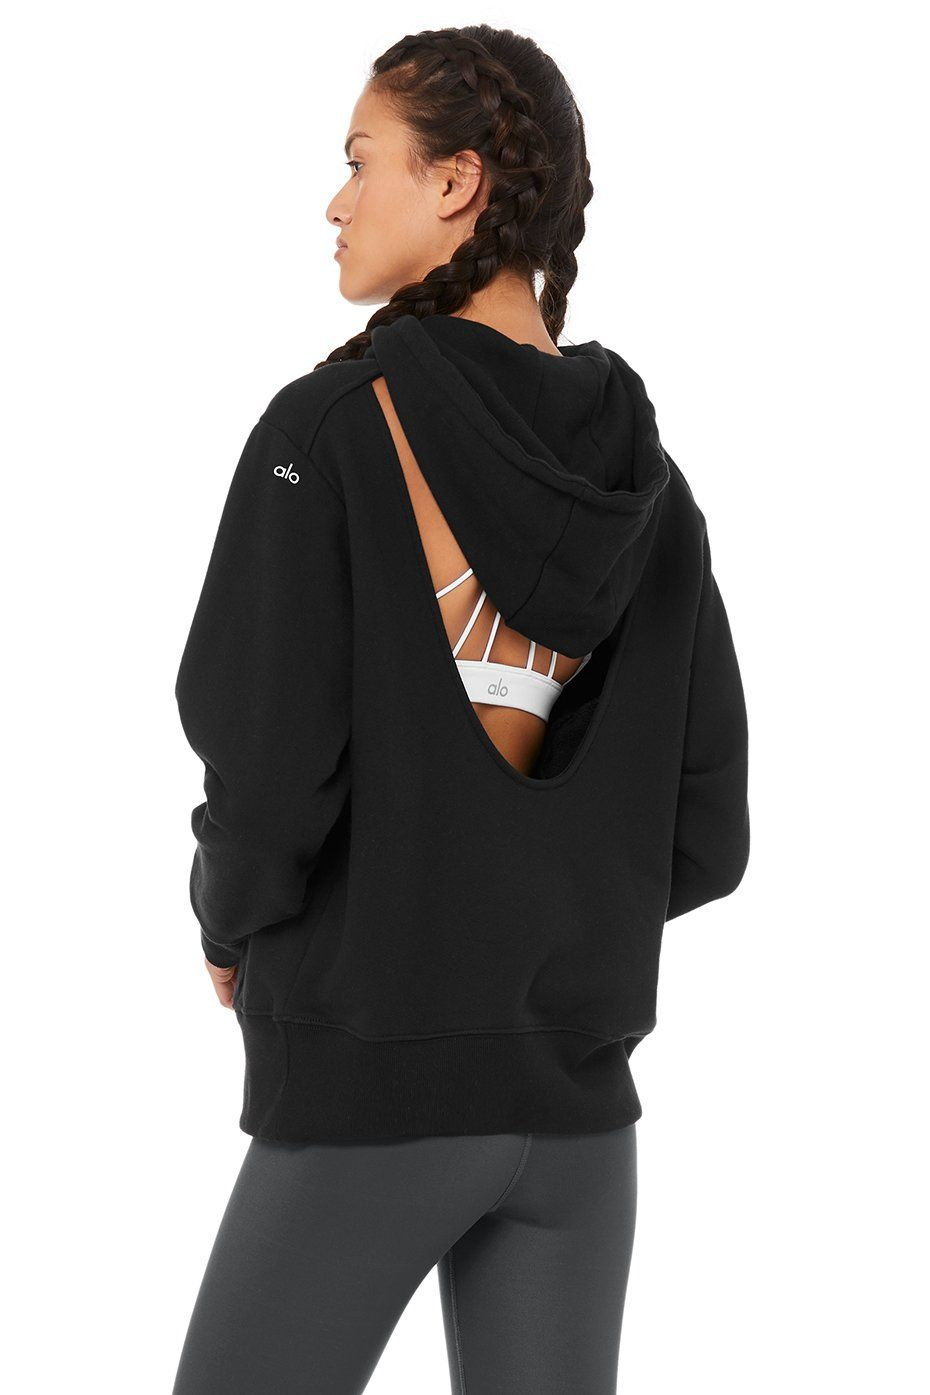 Alo Yoga LIMITED-EDITION EXCLUSIVE CROPPED HOODIE